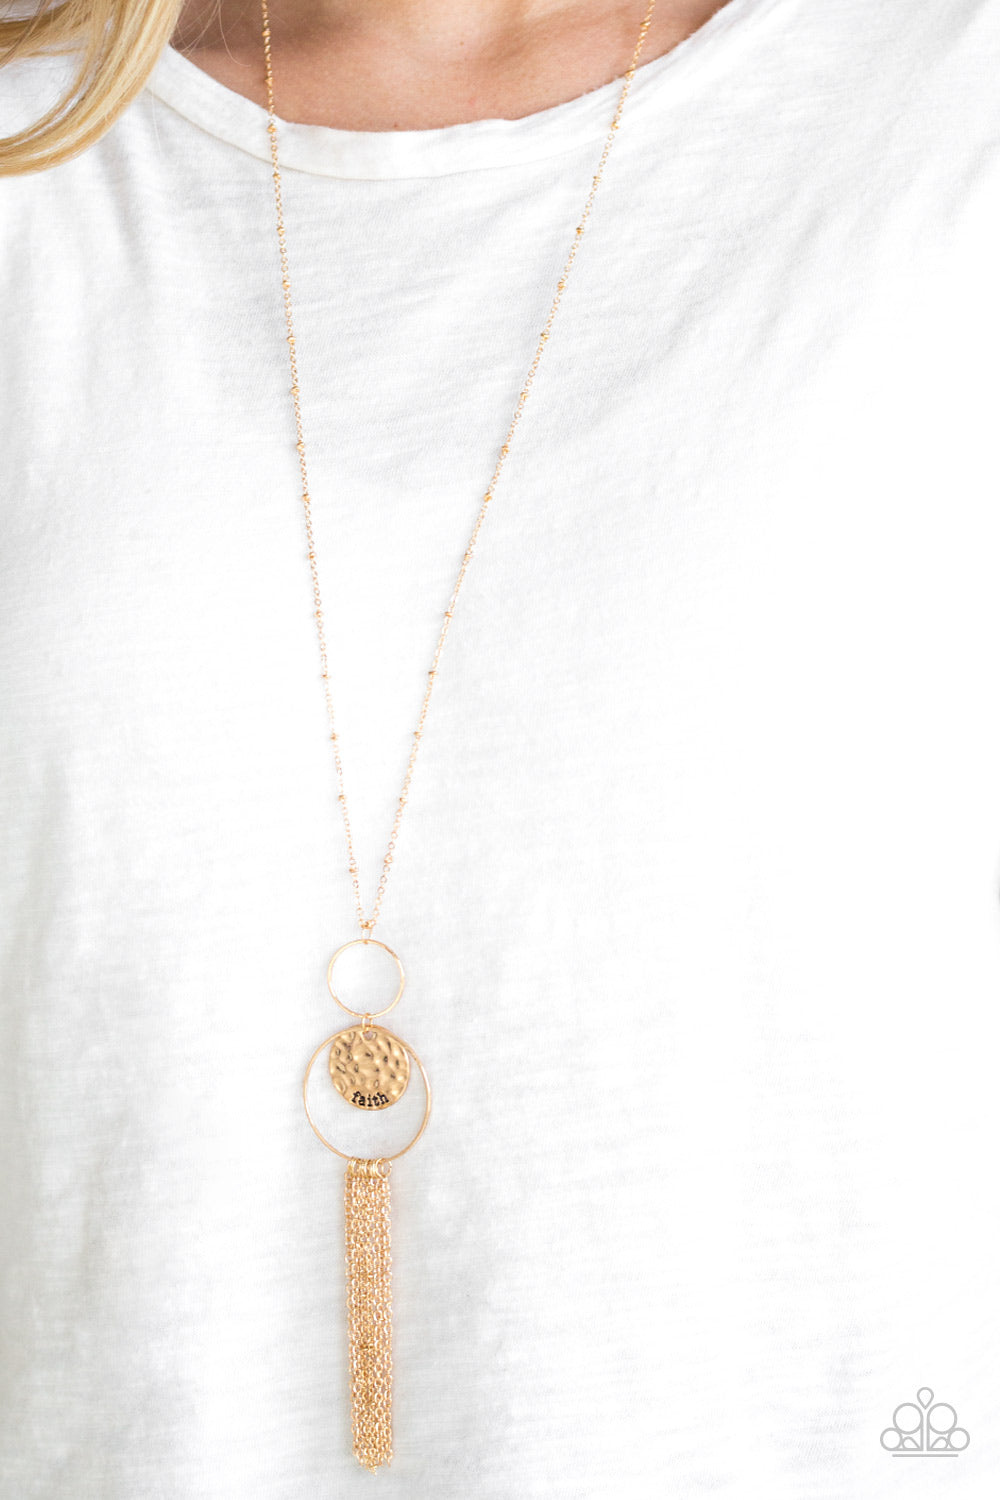 Paparazzi Faith Makes All Things Possible - Gold Necklace New